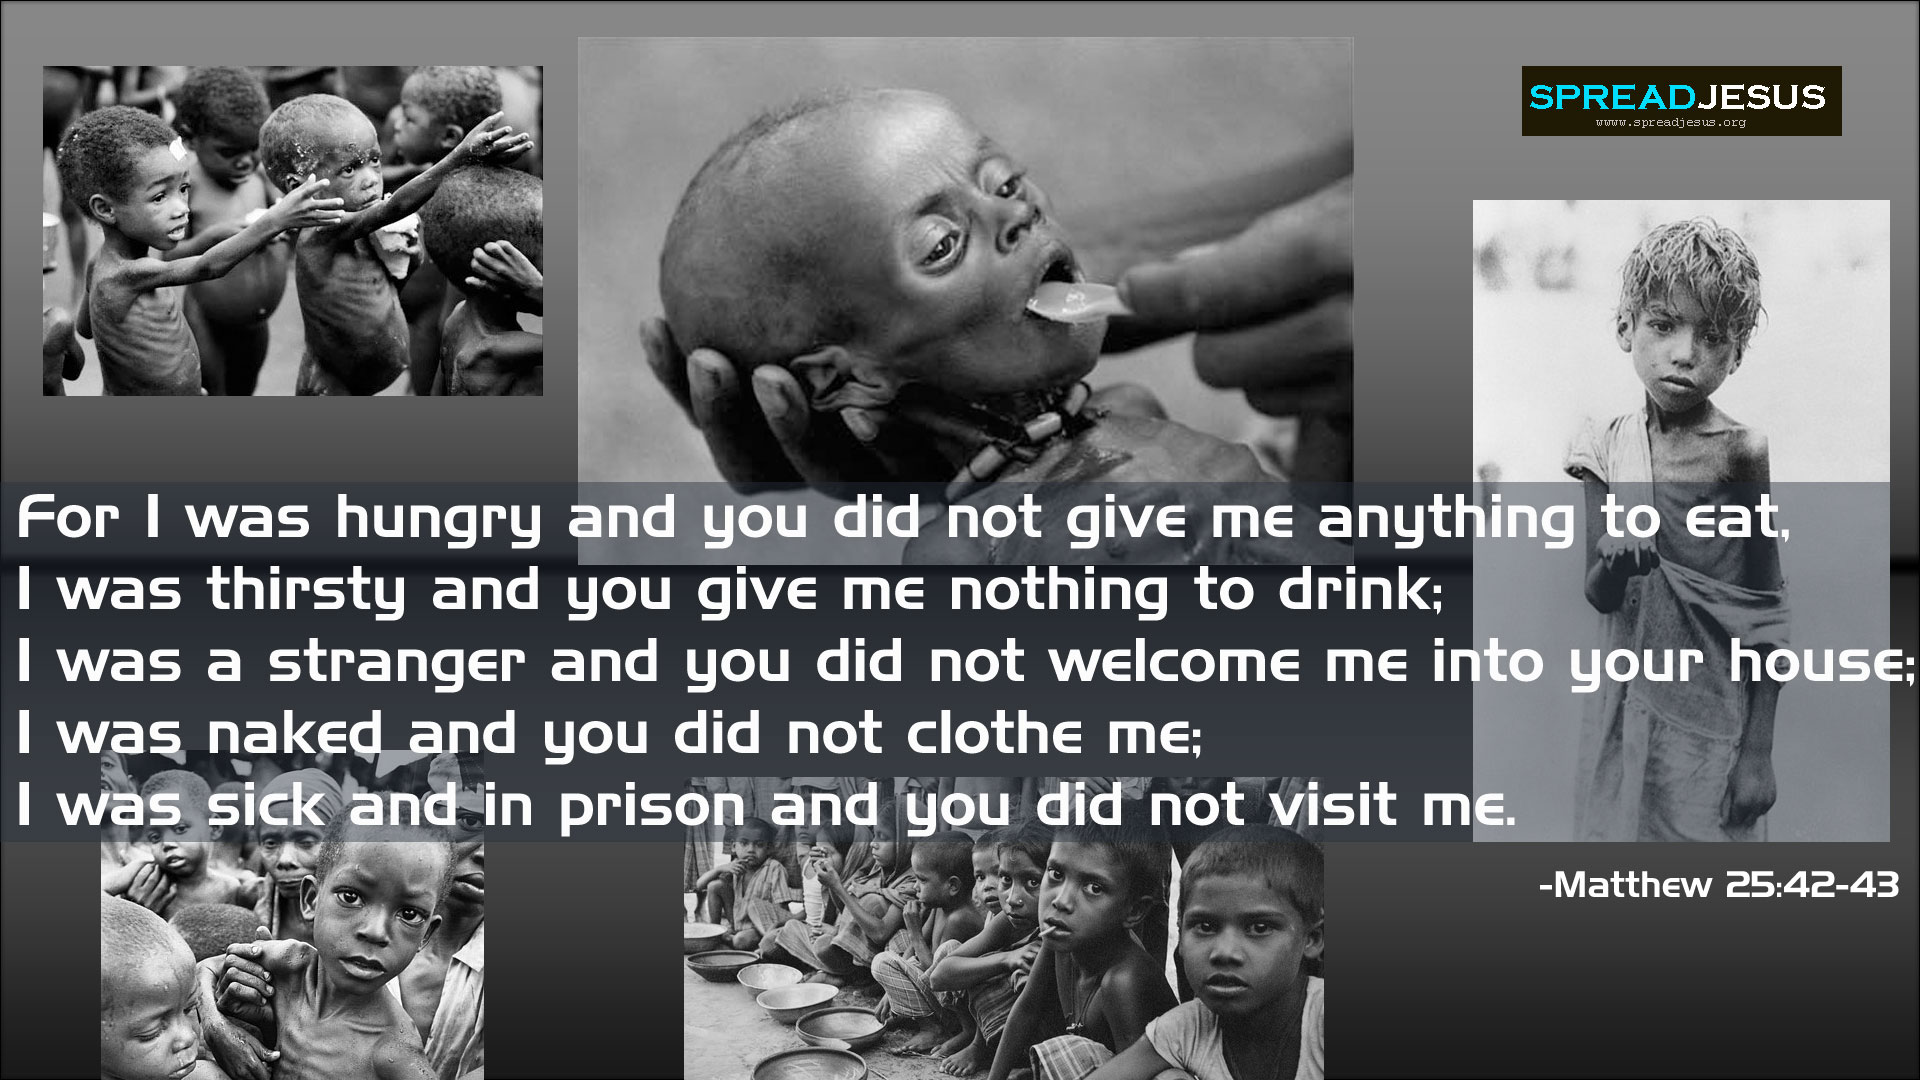 For i was hungry and you did not give me anything to eat, I was thirsty and you give me nothing to drink; I was a stranger and you did not welcome me into your house; I was naked and you did not clothe me; I was sick and in prison and you did not visit me. -Matthew 25:42-43